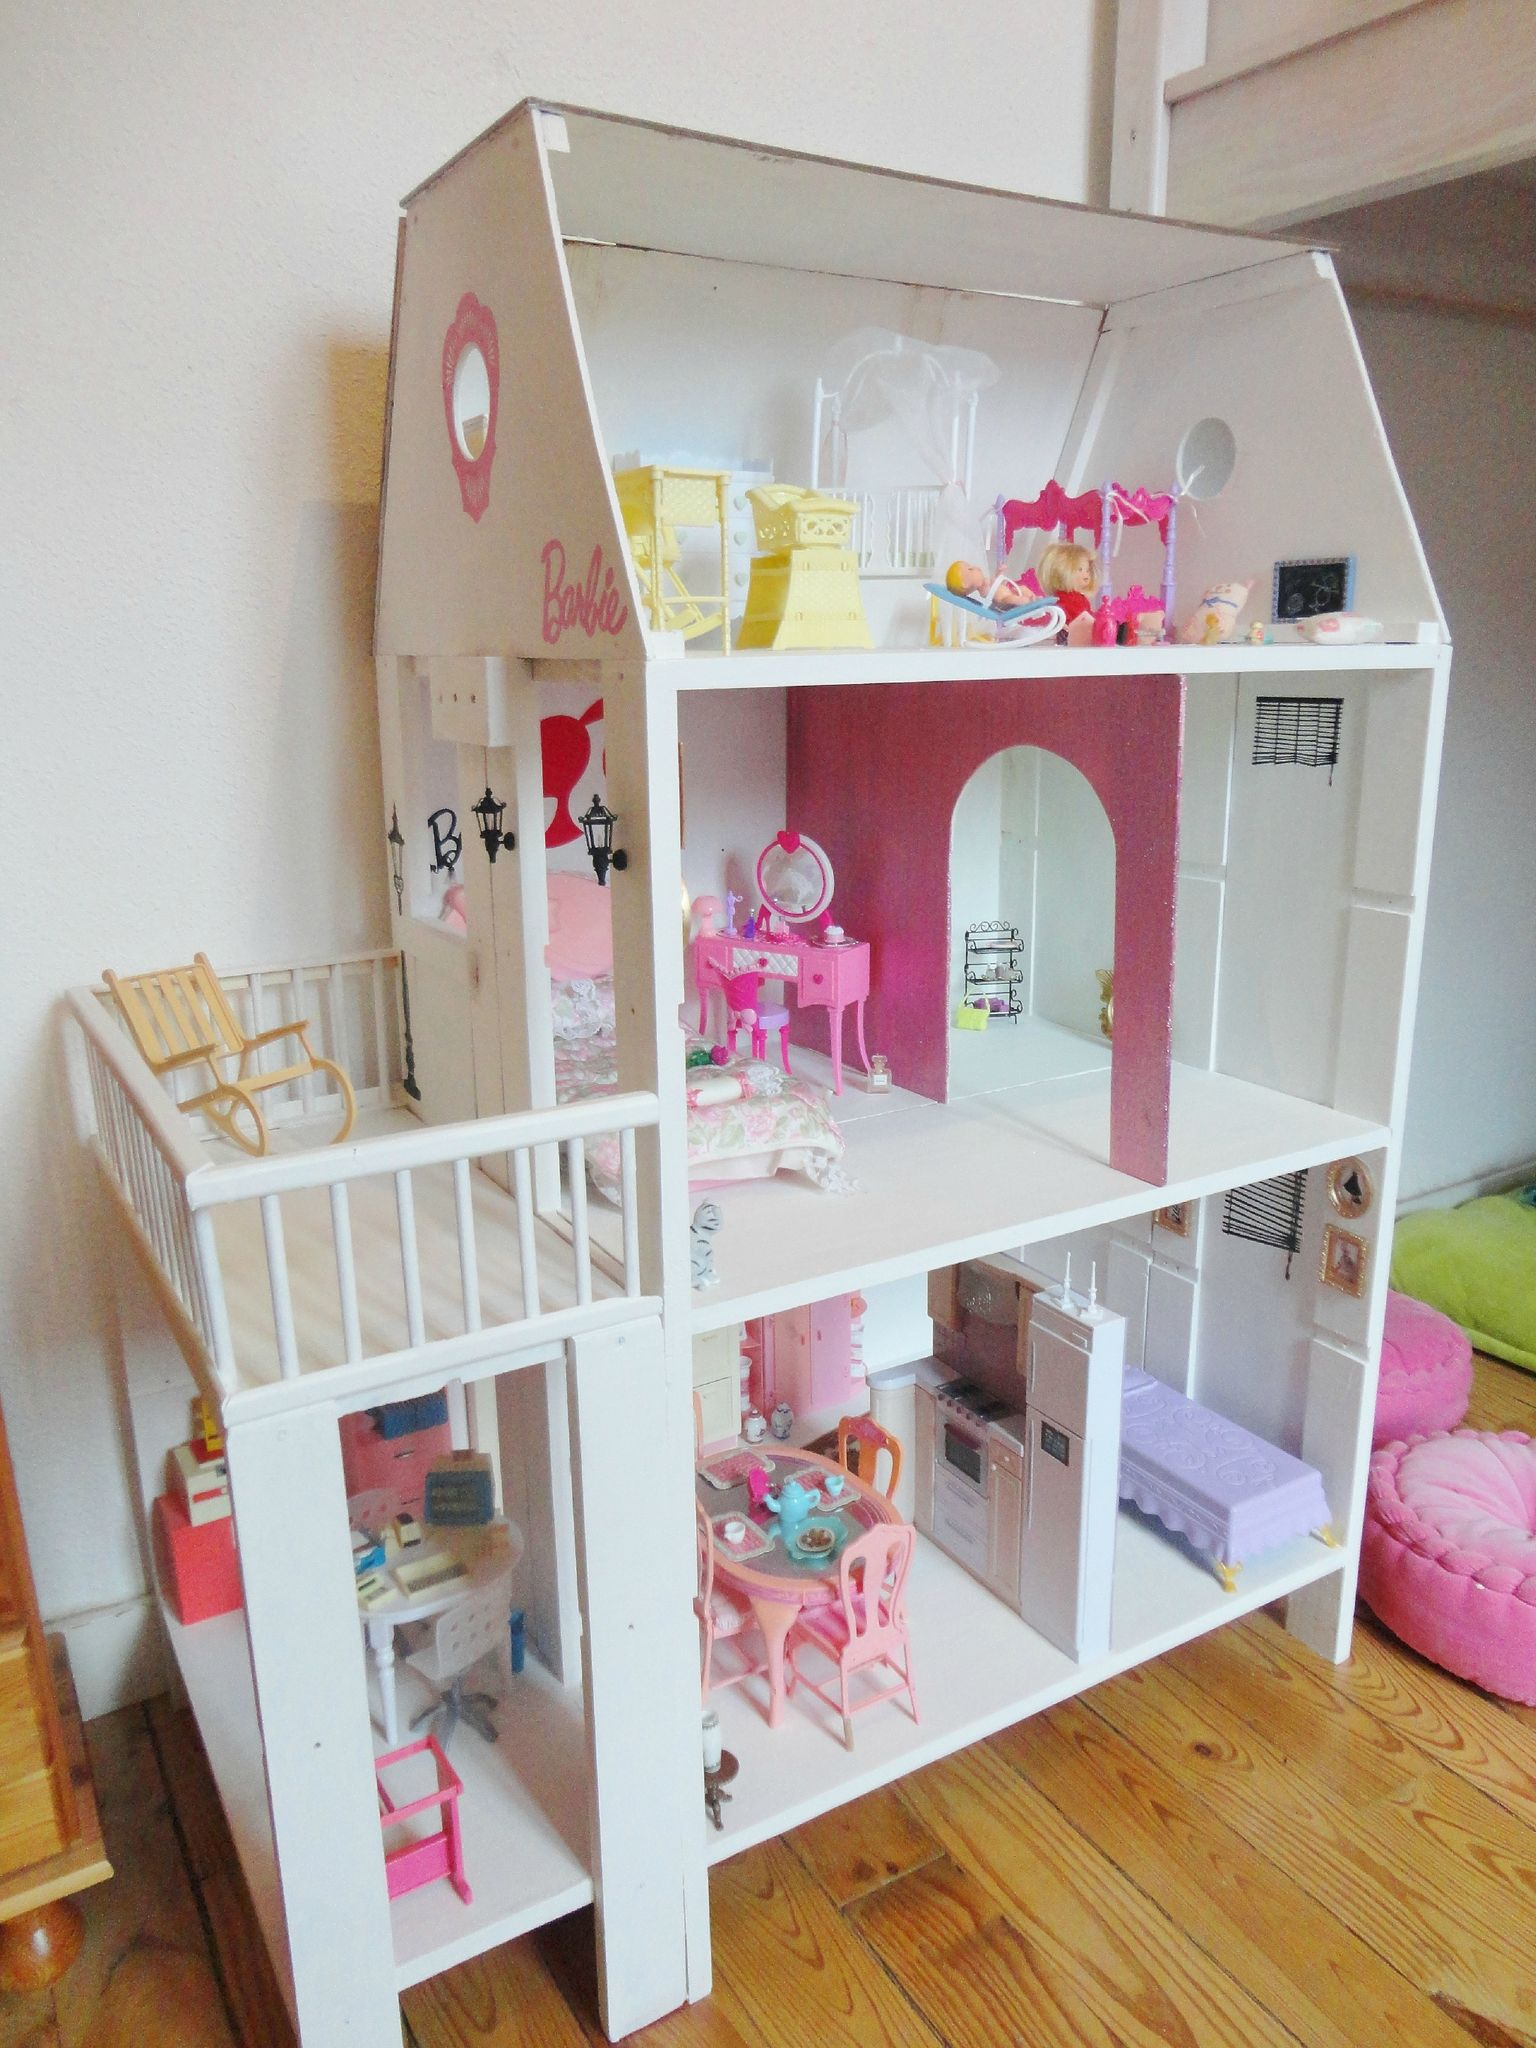 Maison de barbie sc cr ations for Les meubles de maison